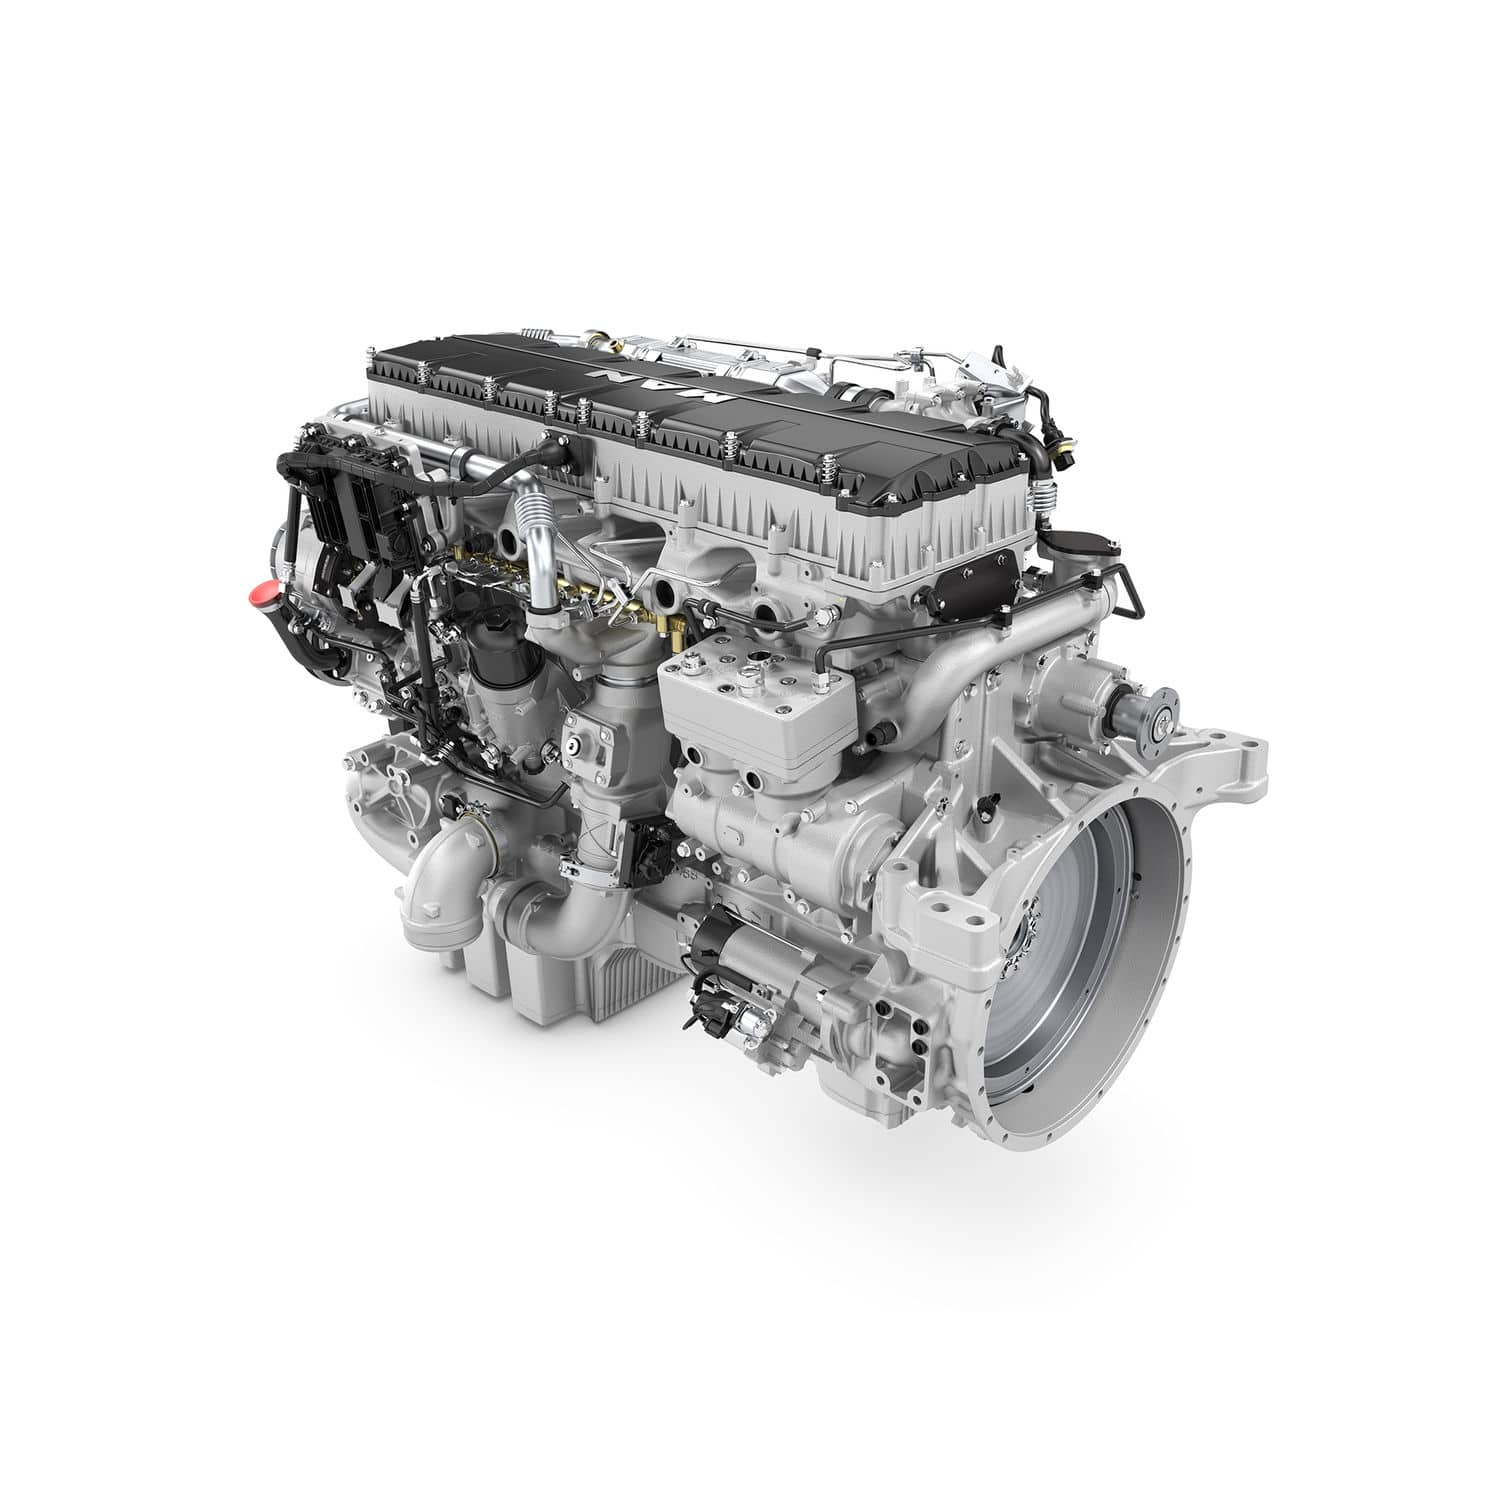 Sel Engine 6 Cylinder Turbocharged Common Rail D3876 Le12x